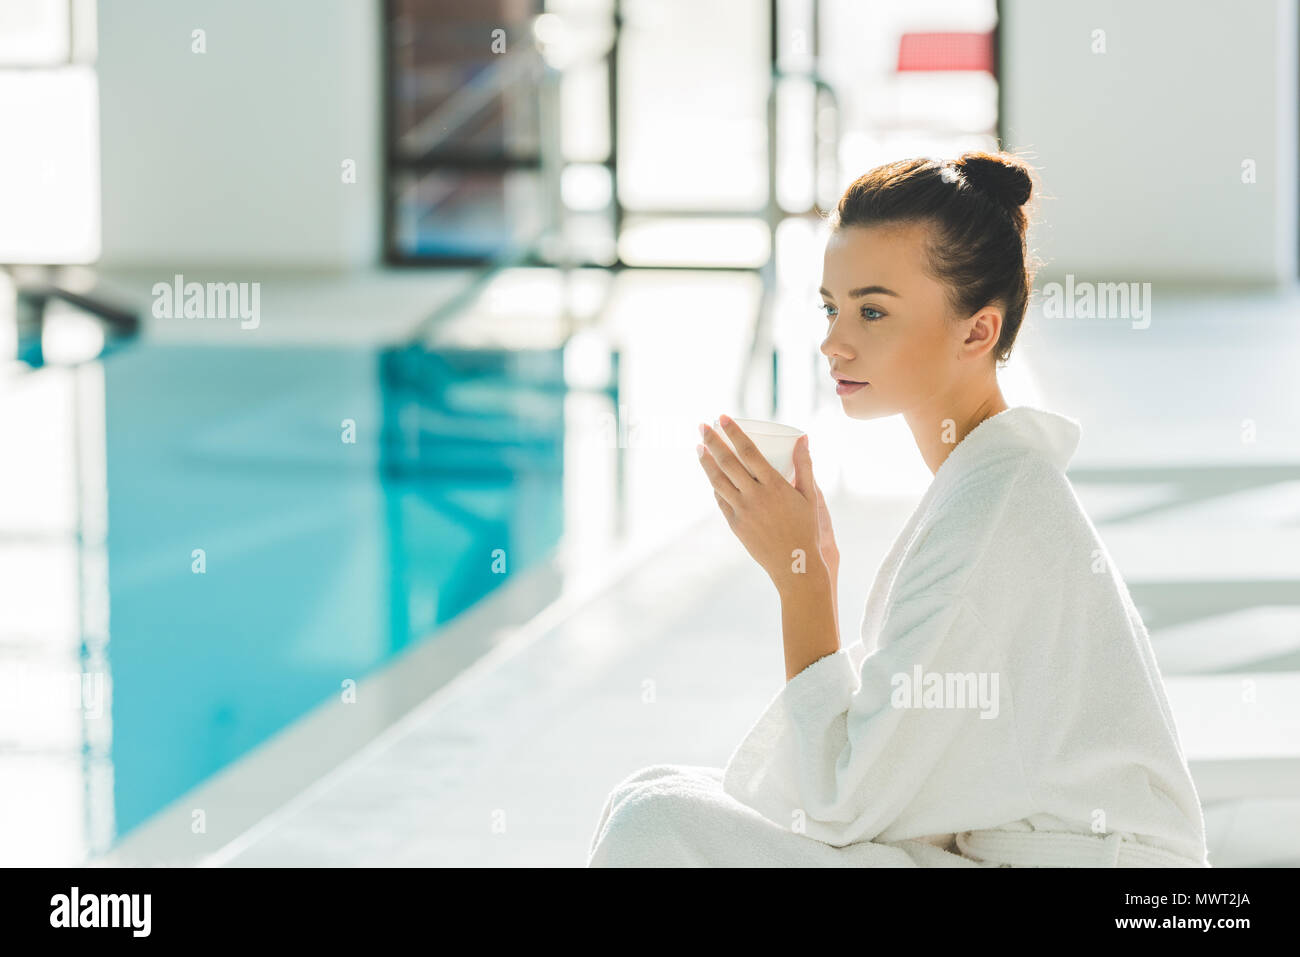 thoughtful young woman in bathrobe with cup of coffee at spa - Stock Image